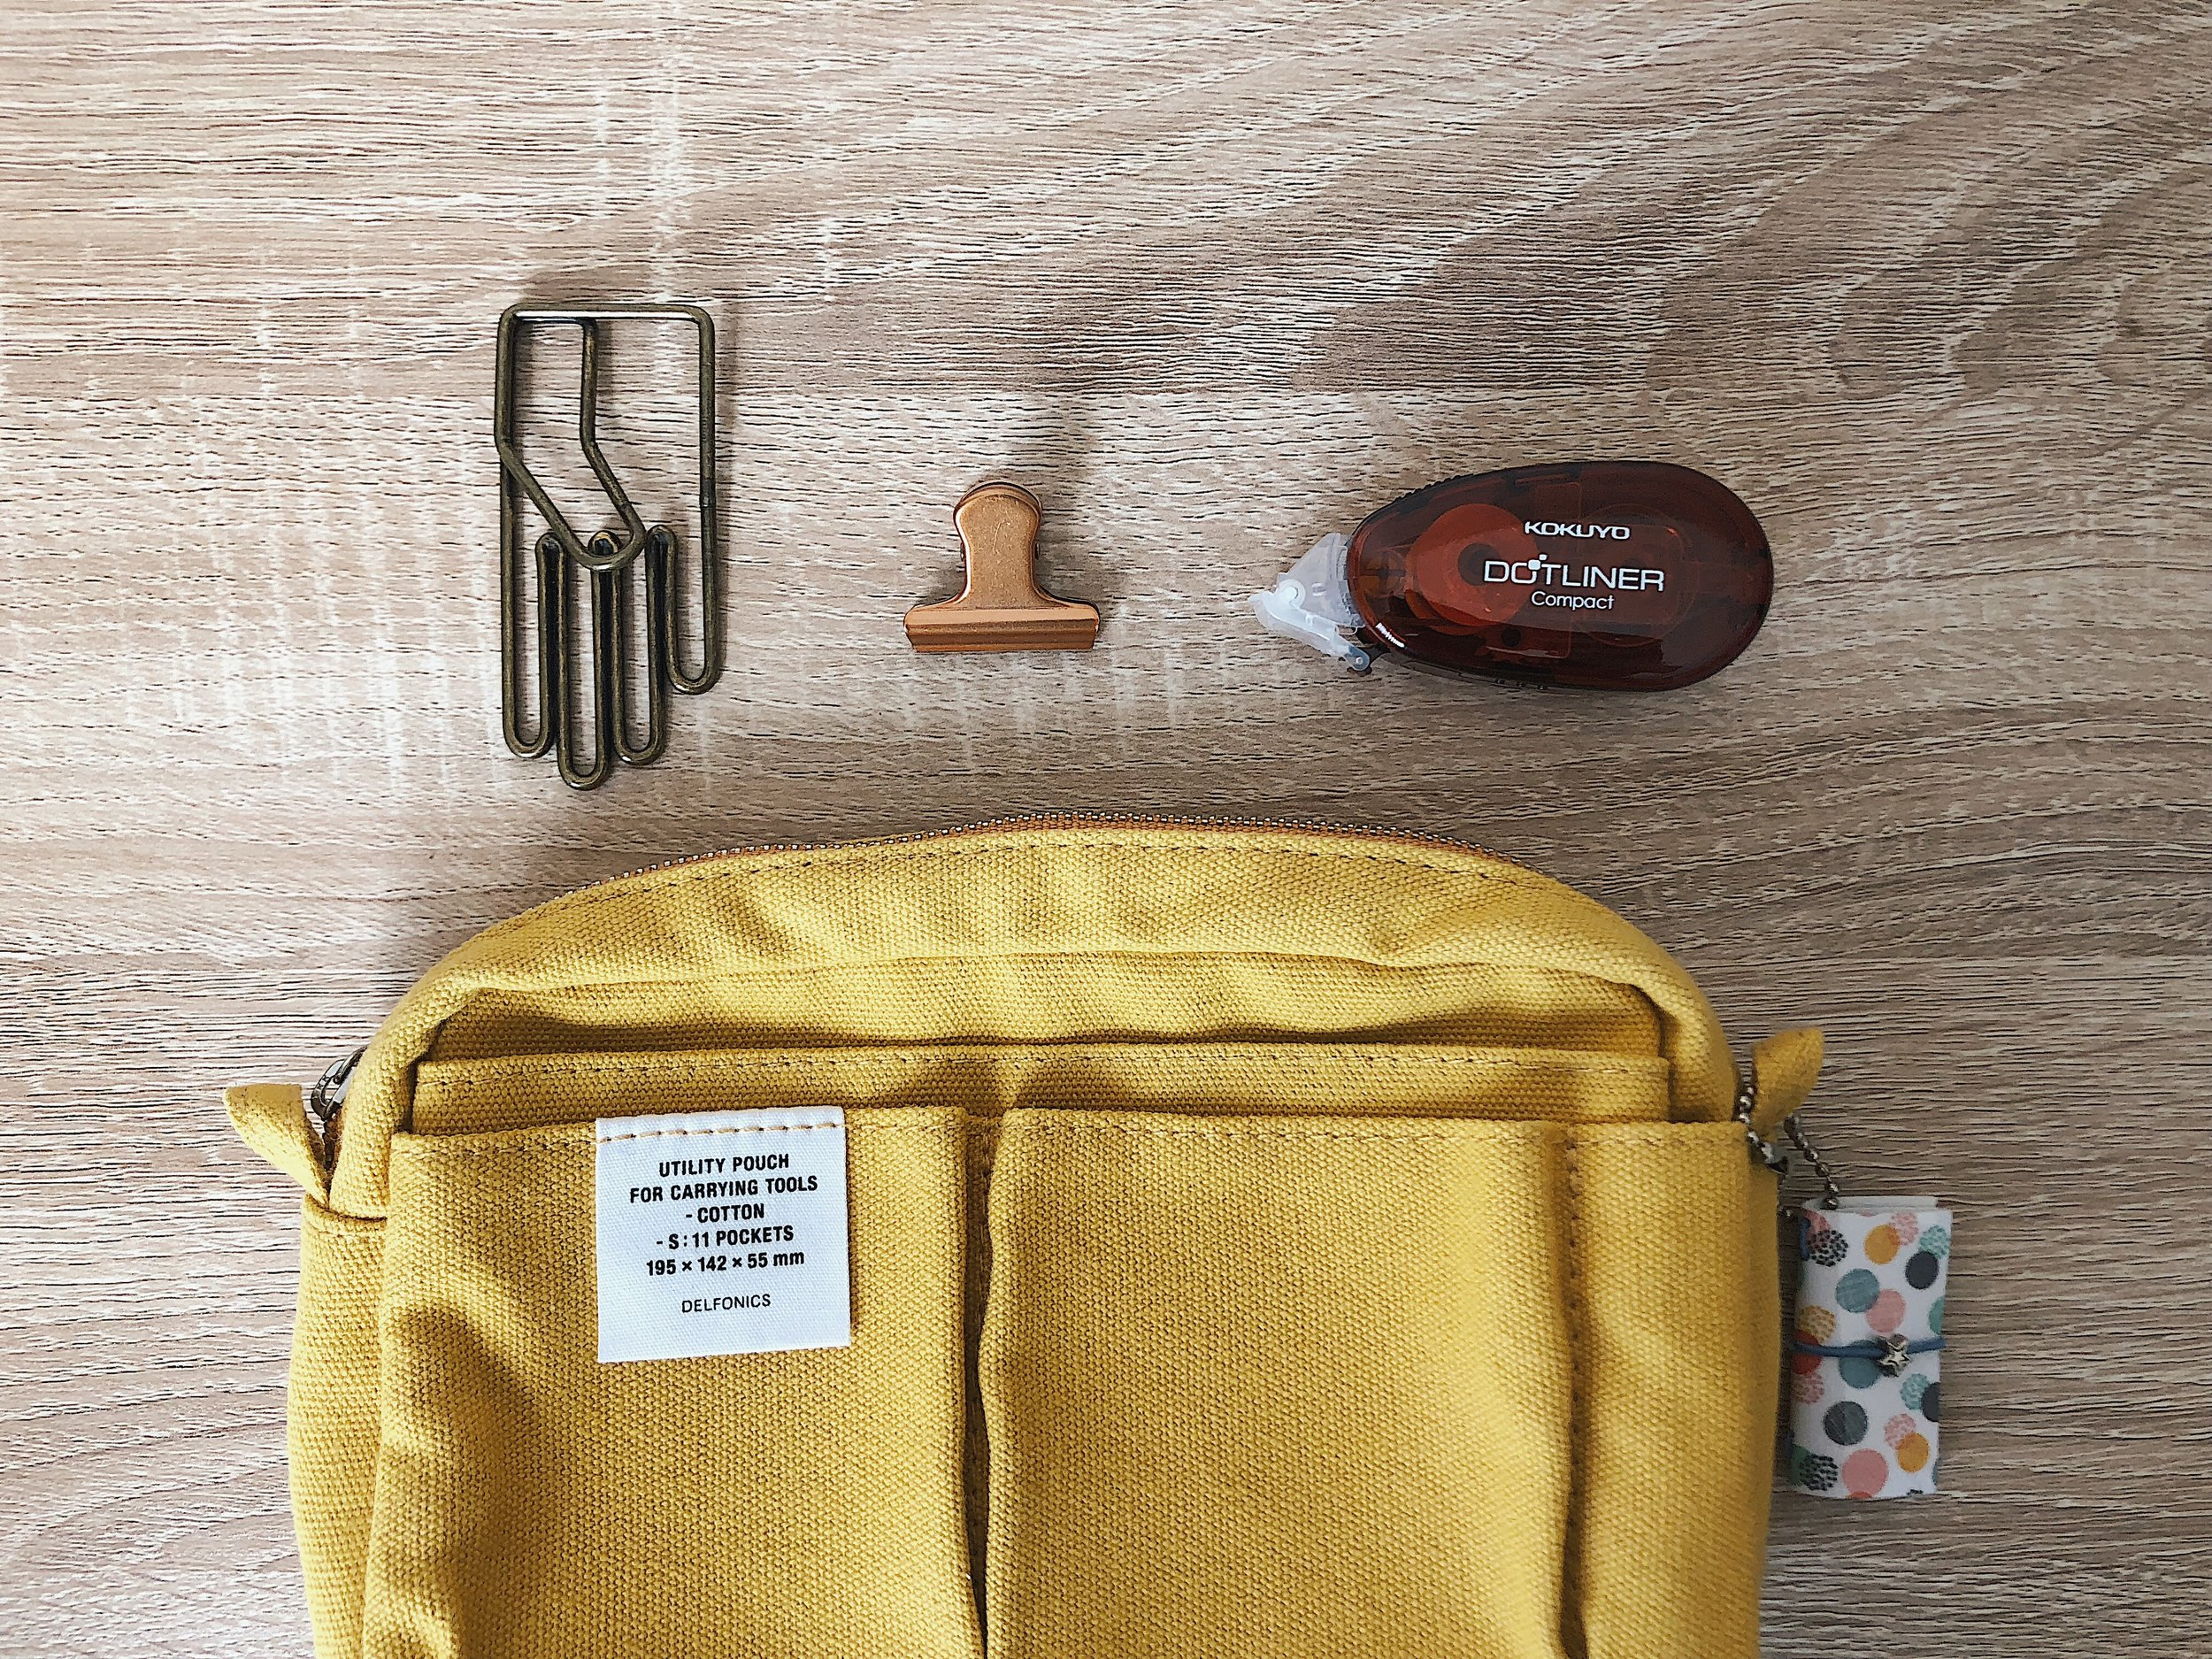 nytravel-pouch1.jpg